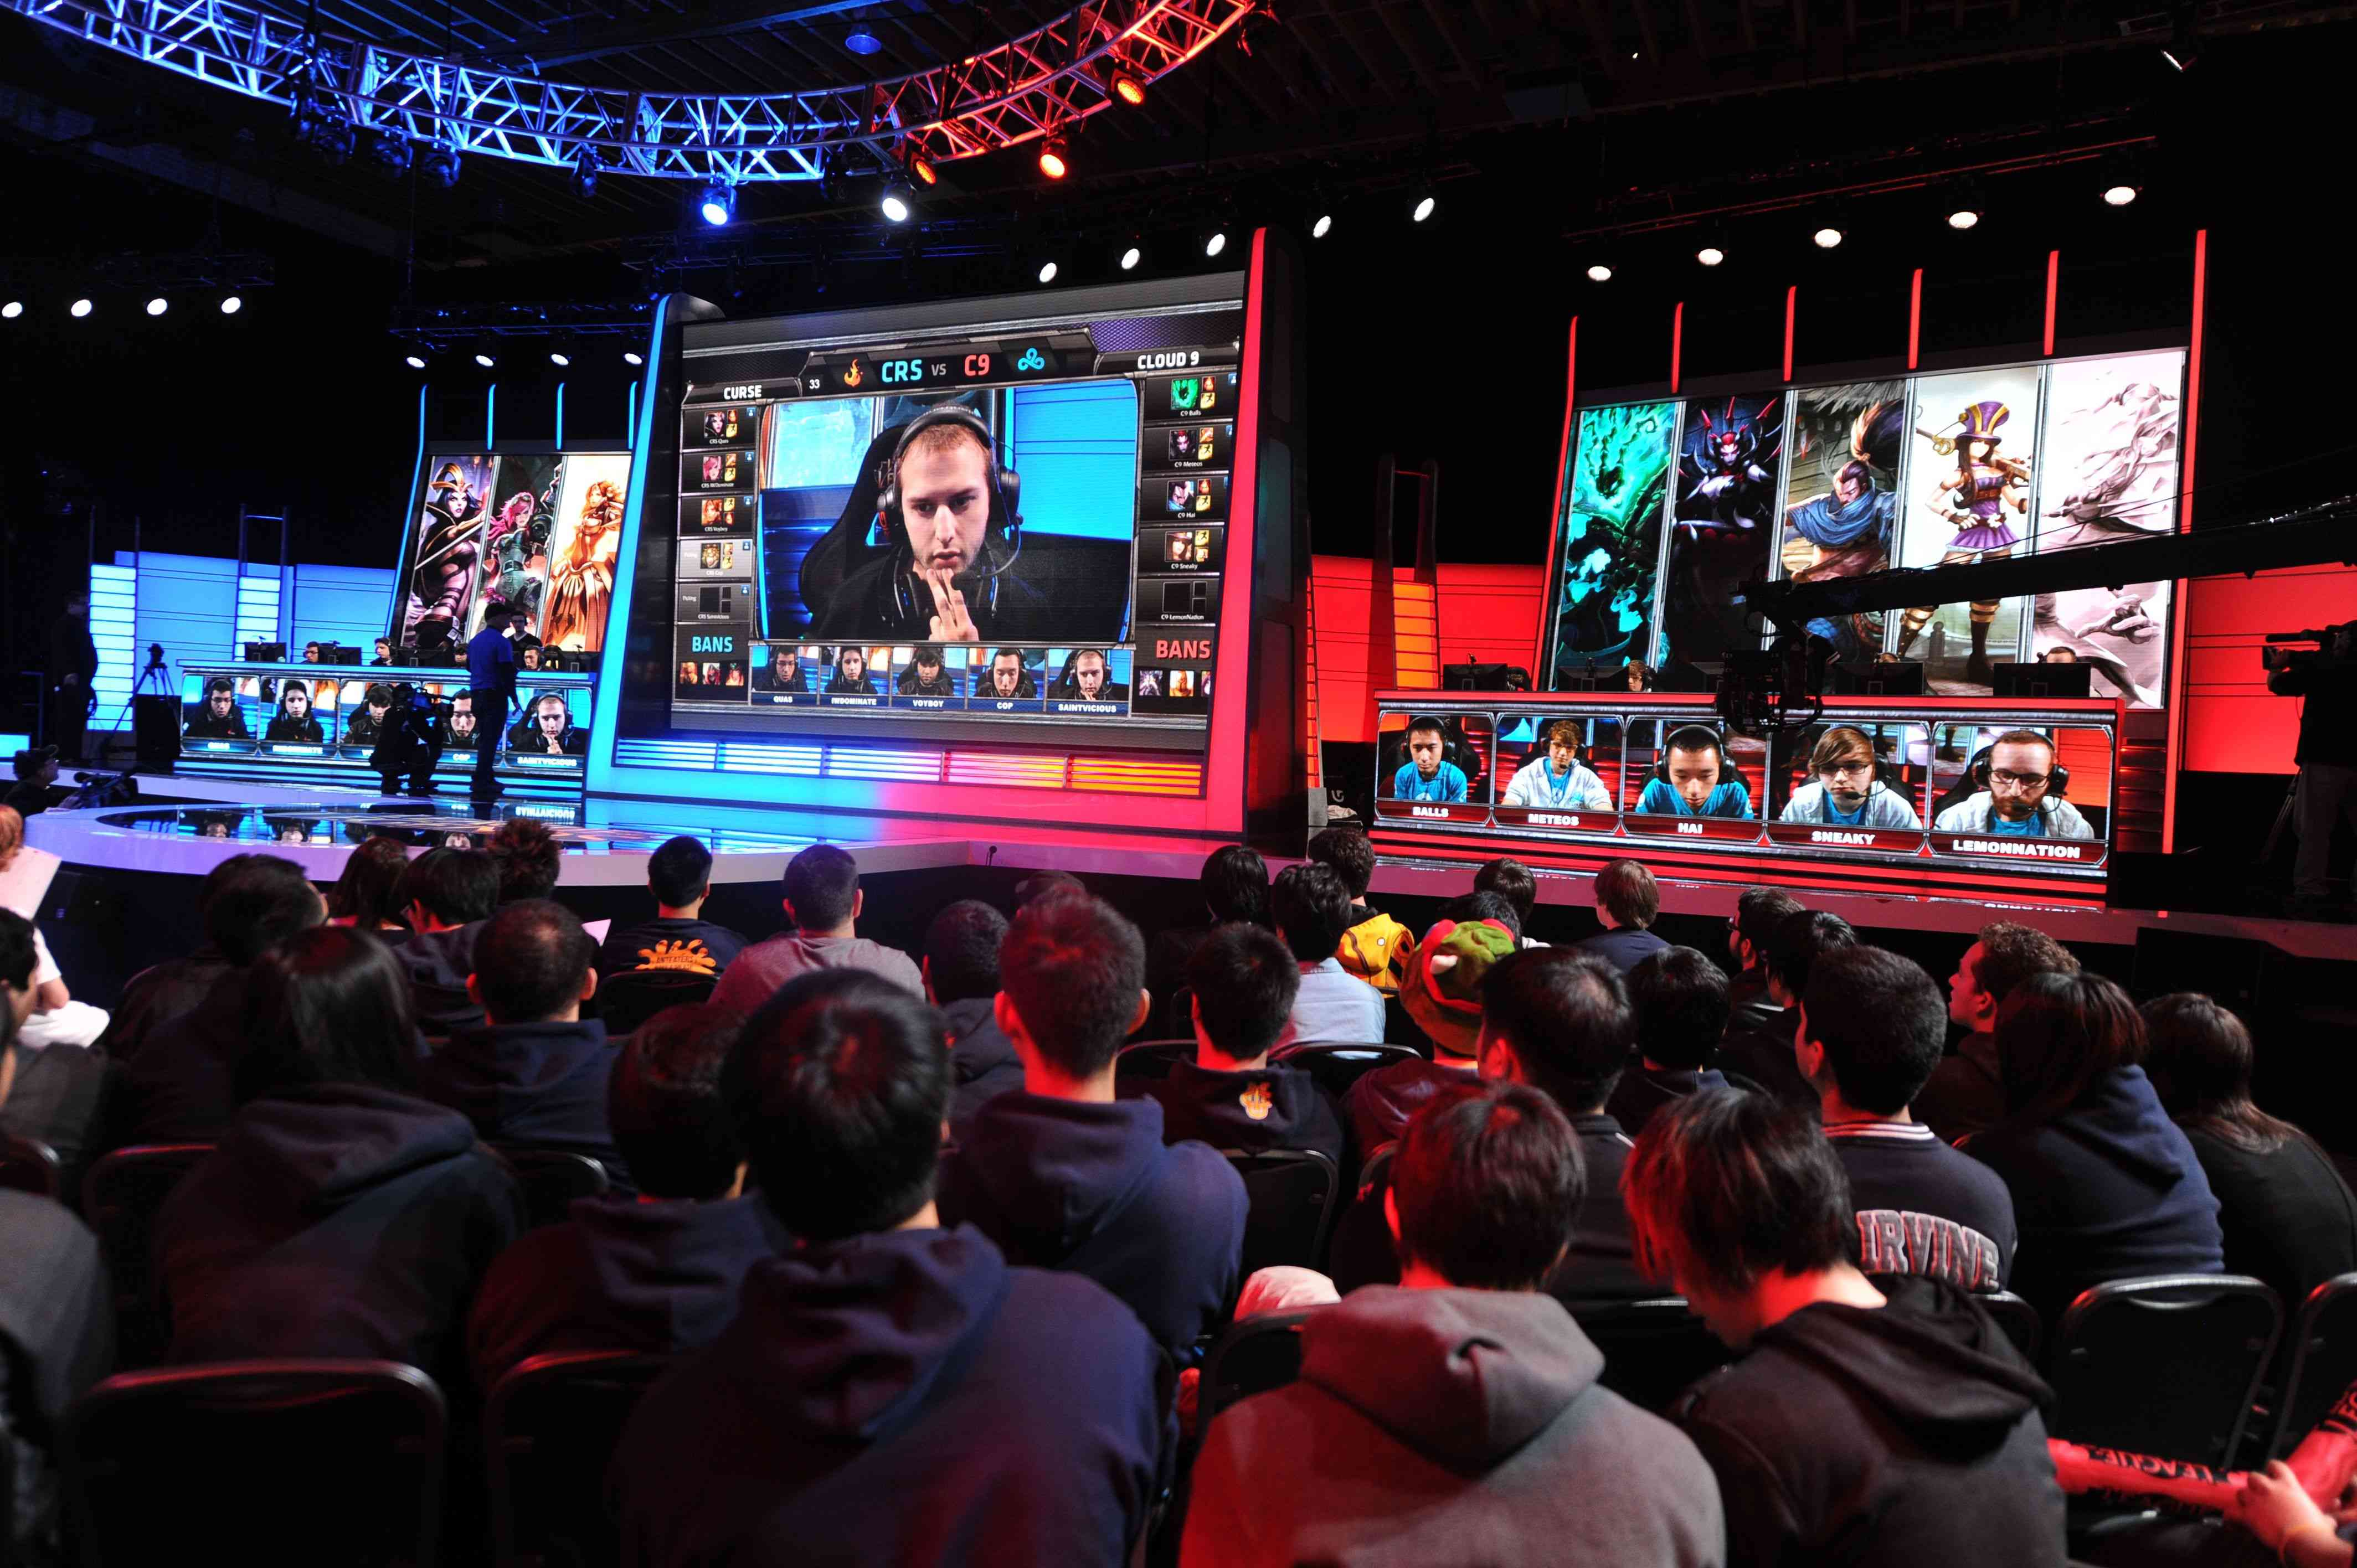 Studio Audience for the League of Legends North American Championship